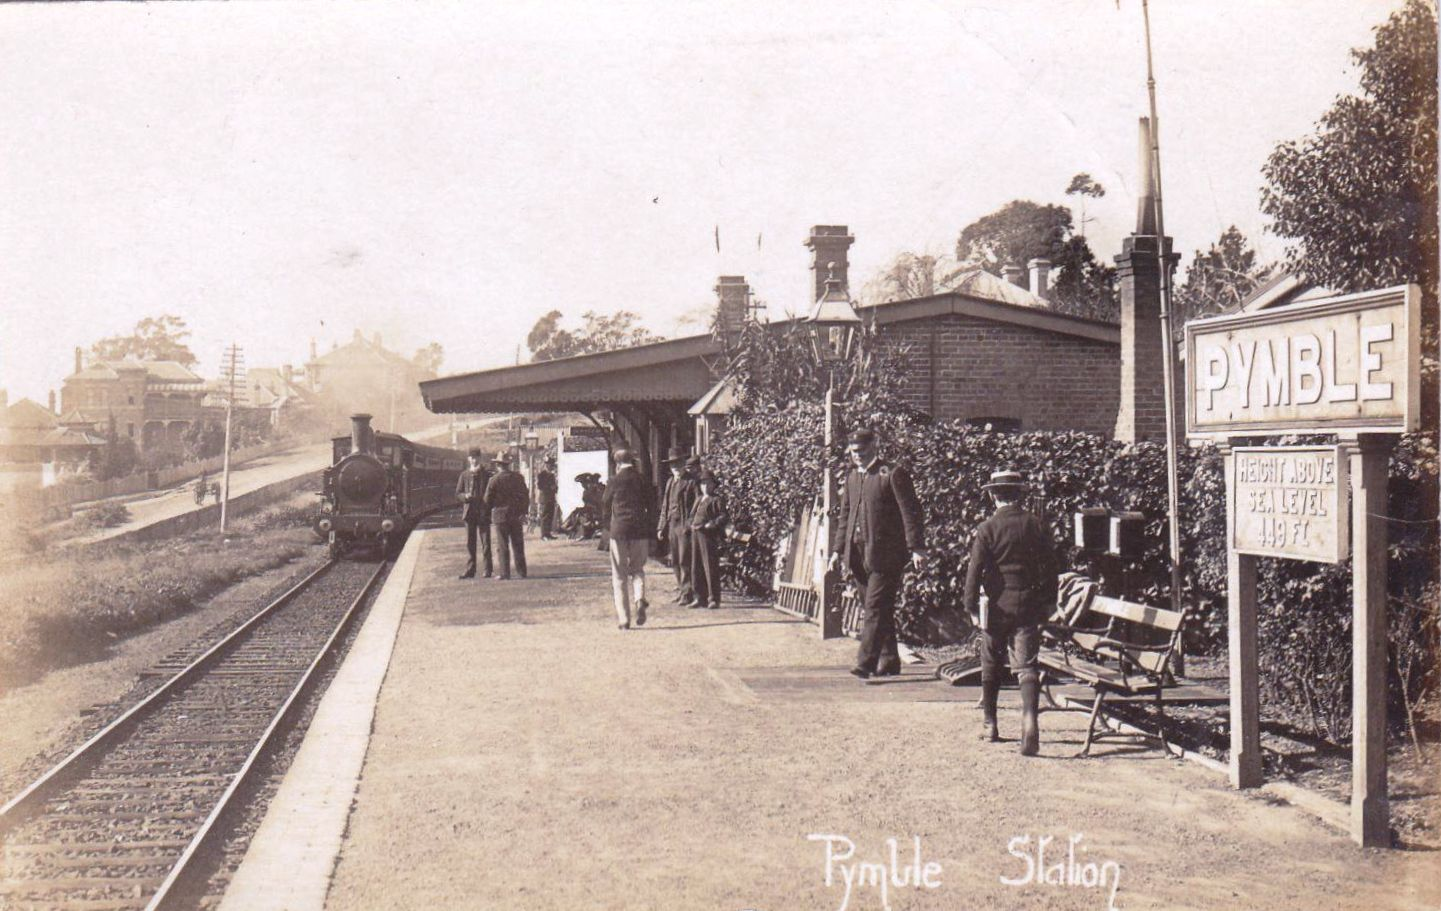 Pymble Train Station